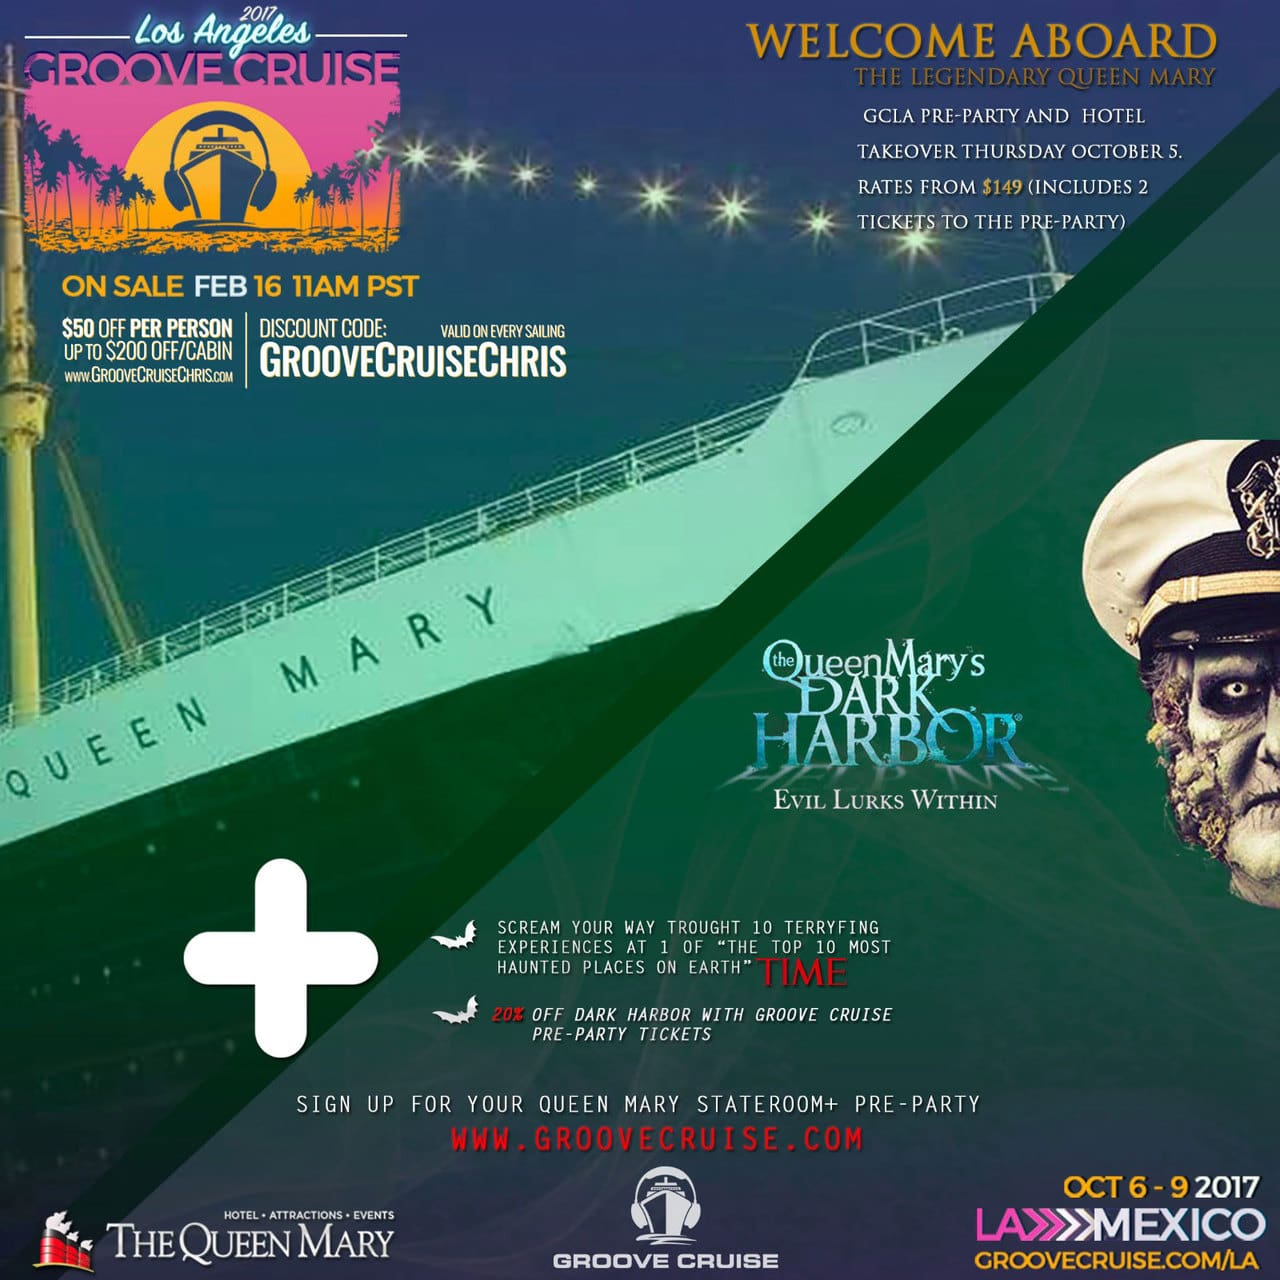 gcla pre-party and queen mary's dark harbor | groove cruise chris